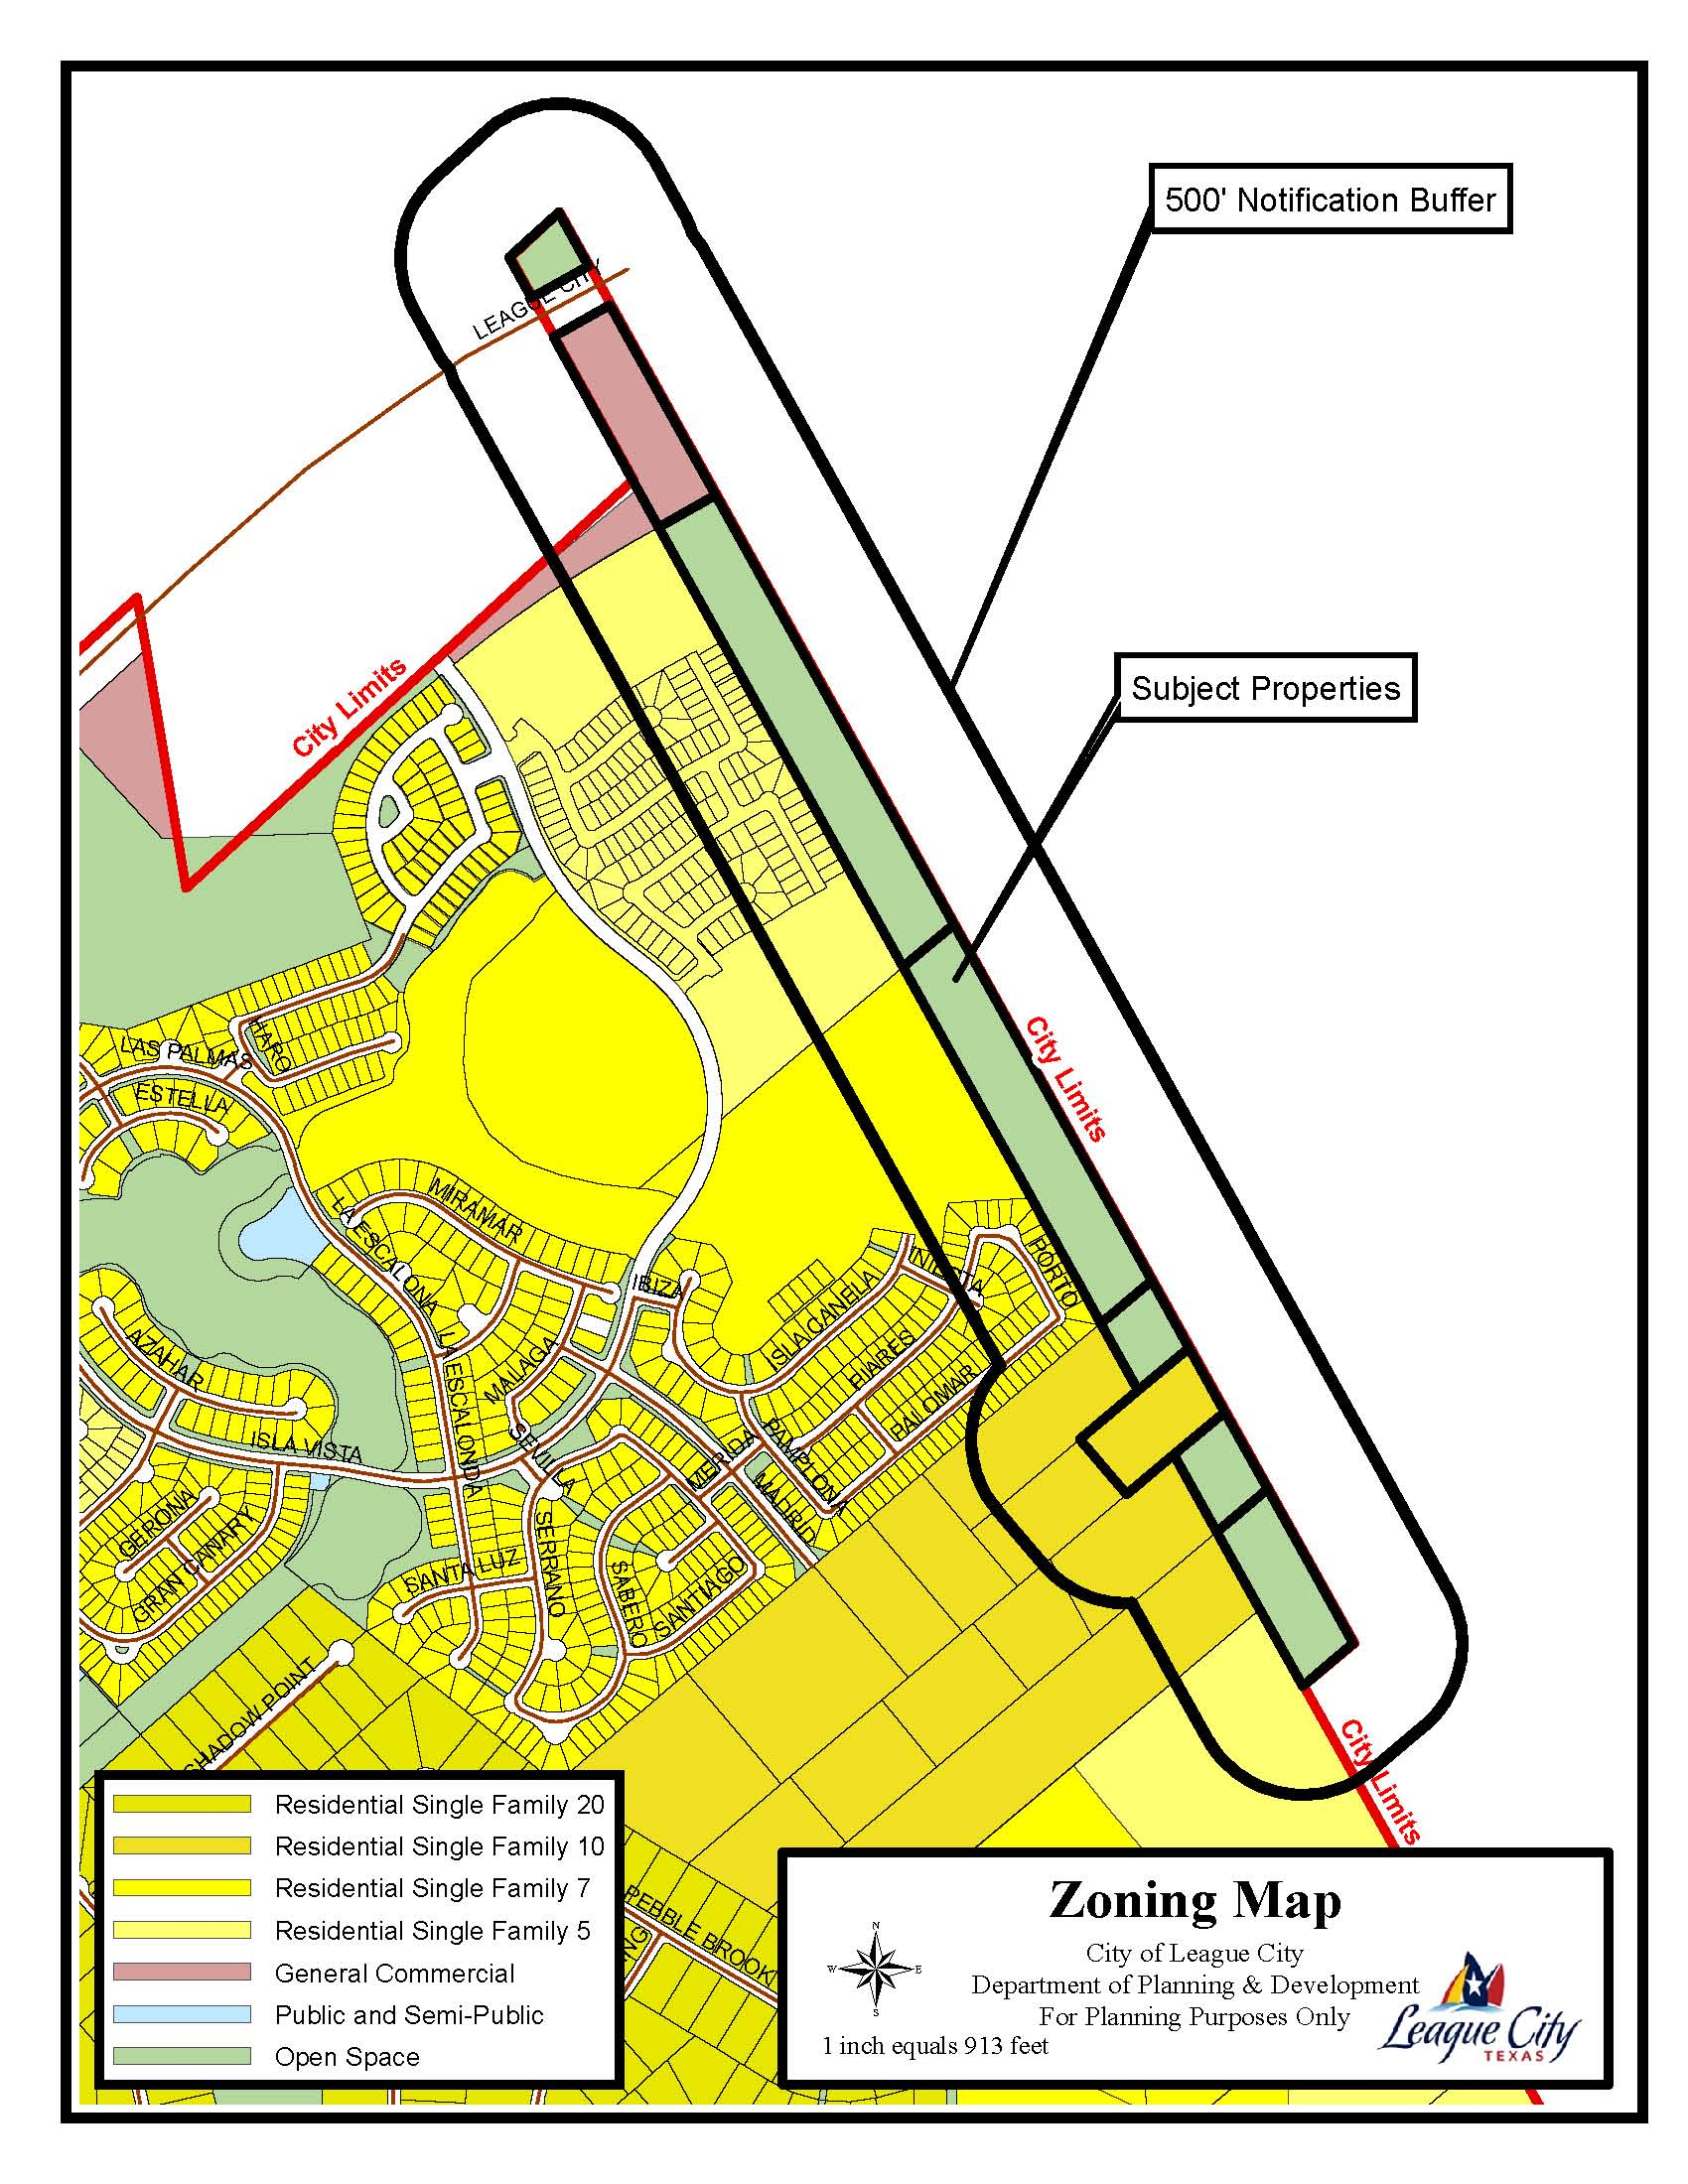 SUP15-05 (Dow Hydrocarbons and Resources Pipeline) zoning map